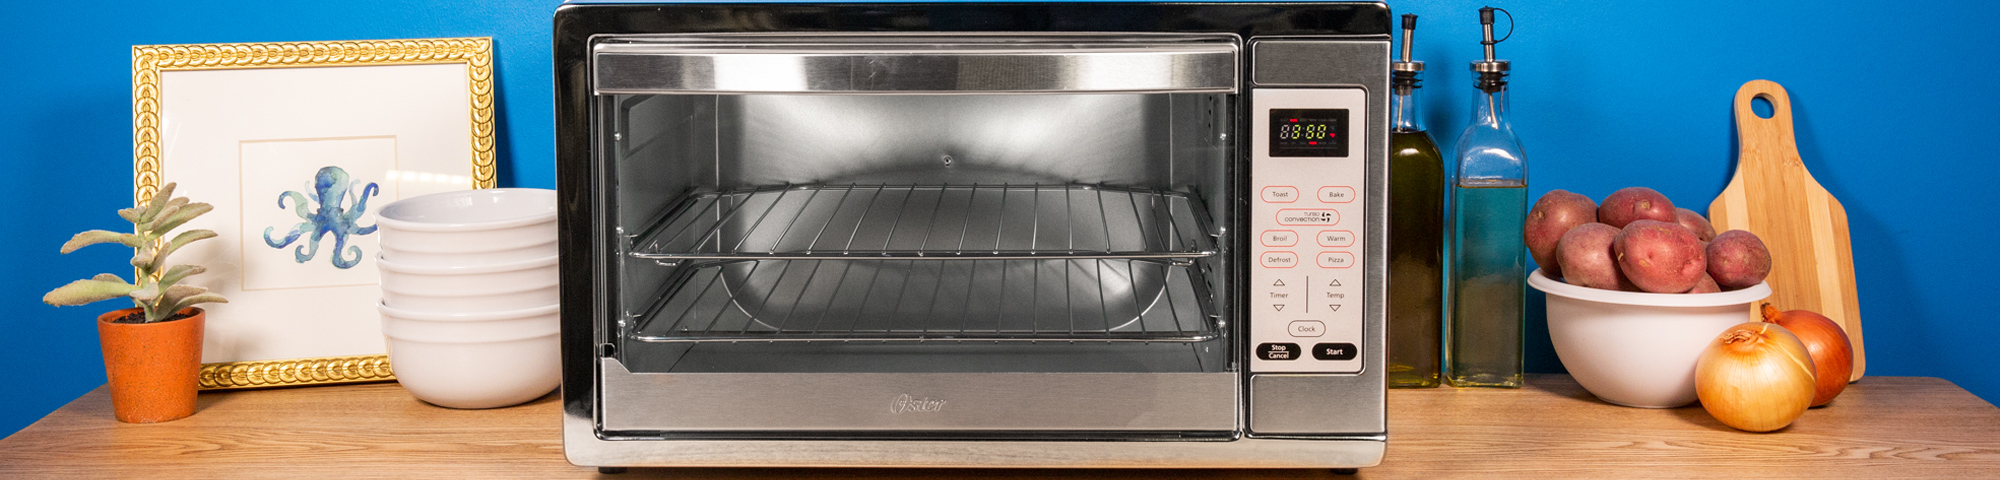 Best Toaster Ovens of 2019 - Reviews of Traditional, Convection